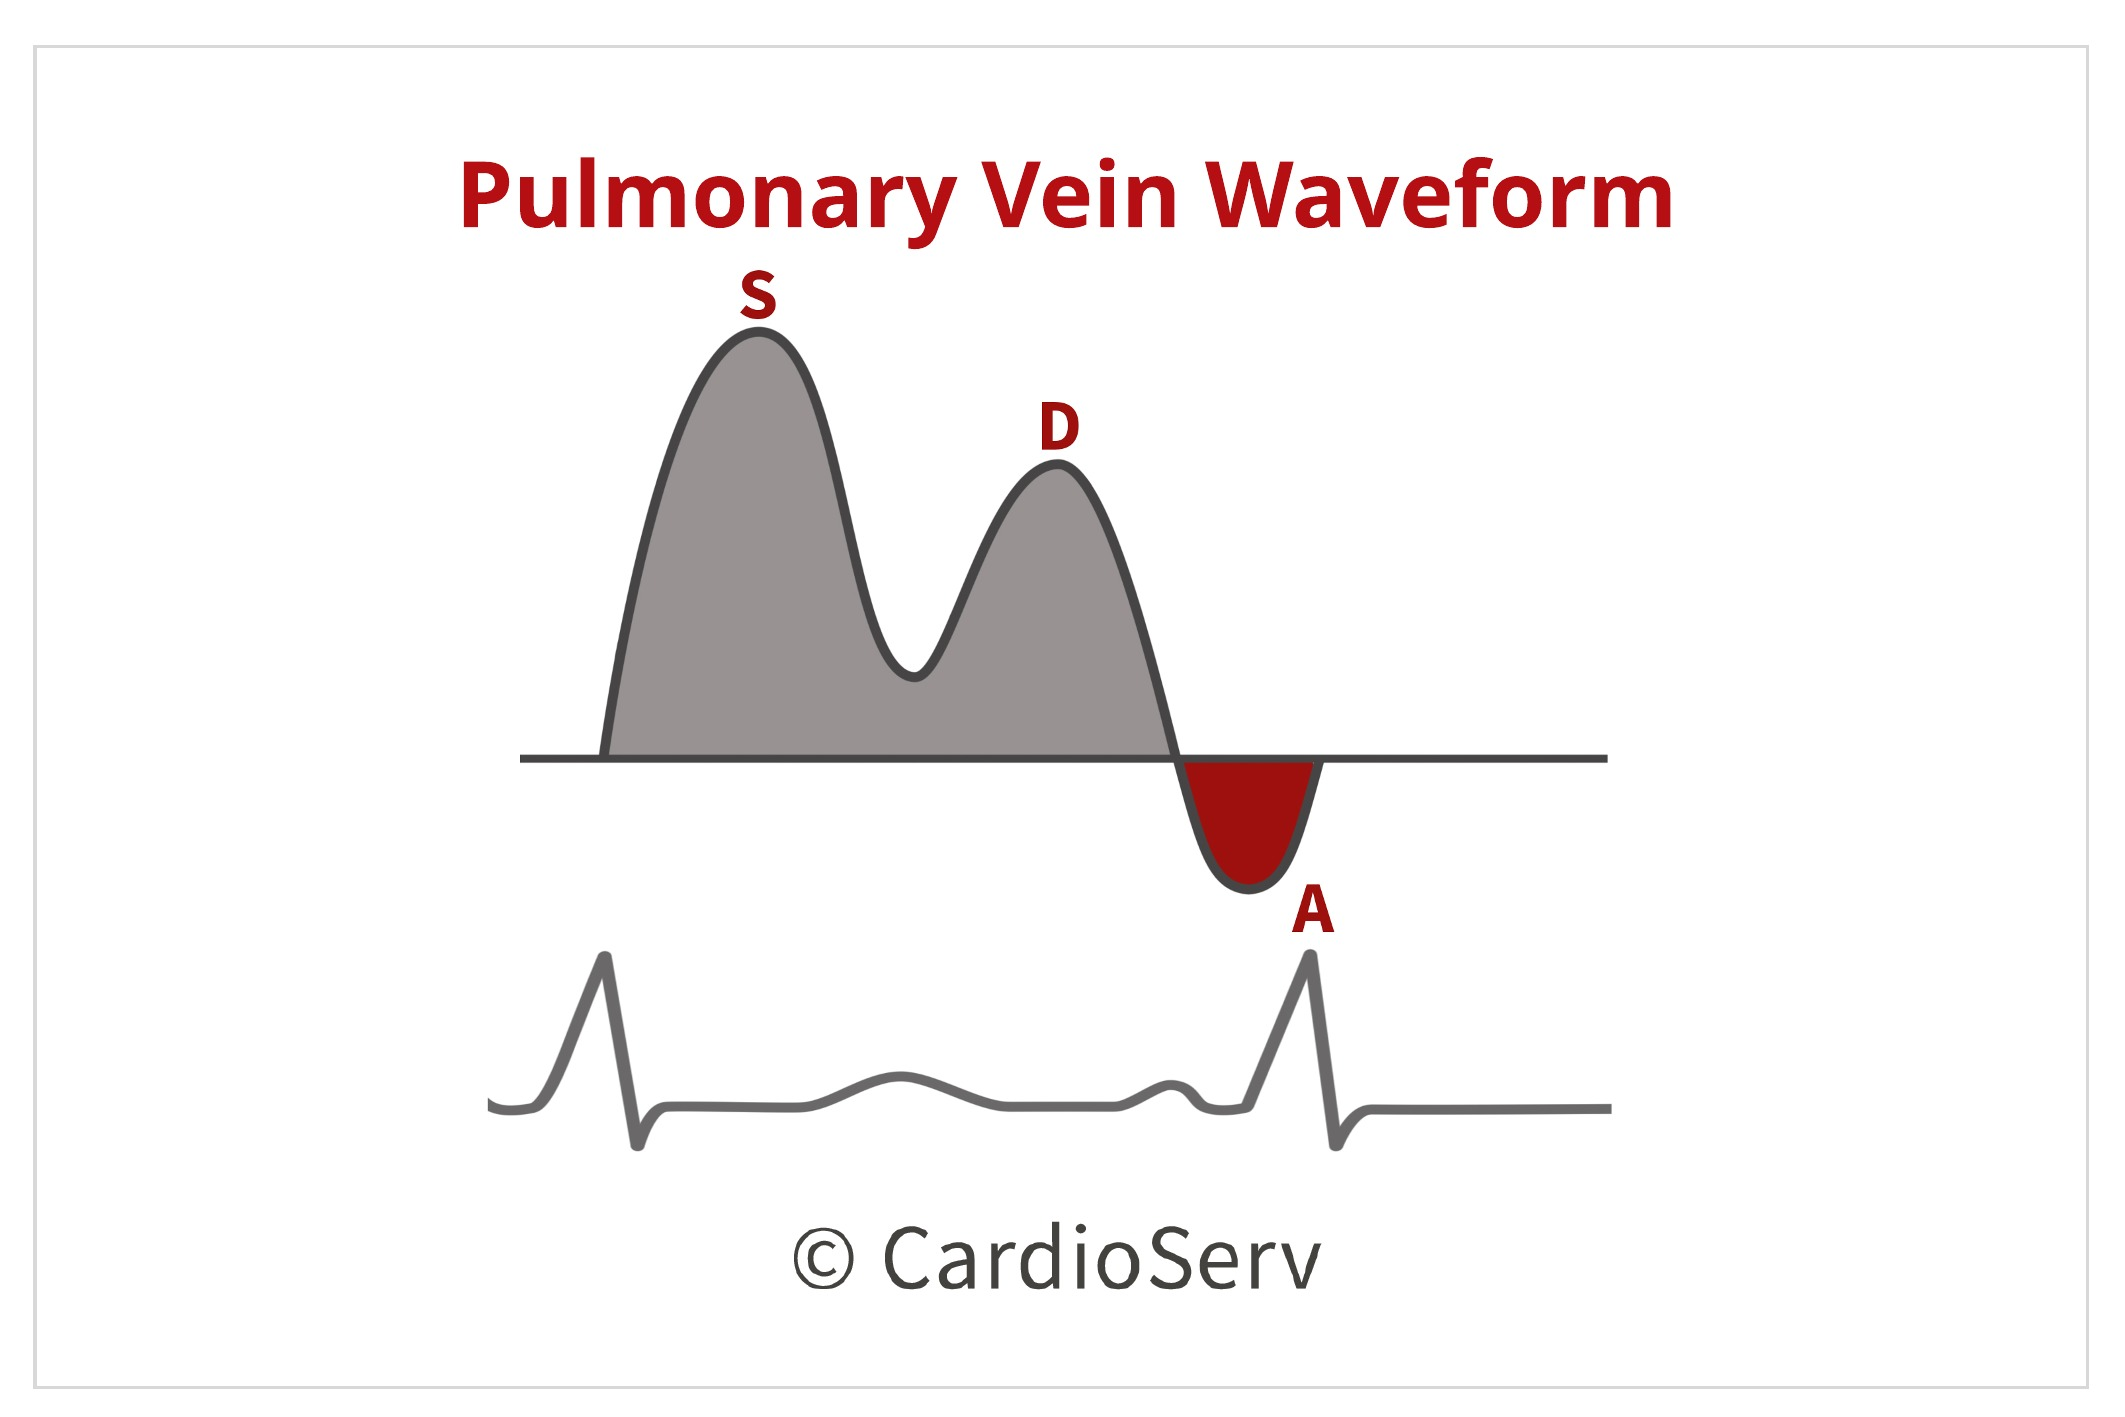 Pulmonary Vein Waveform